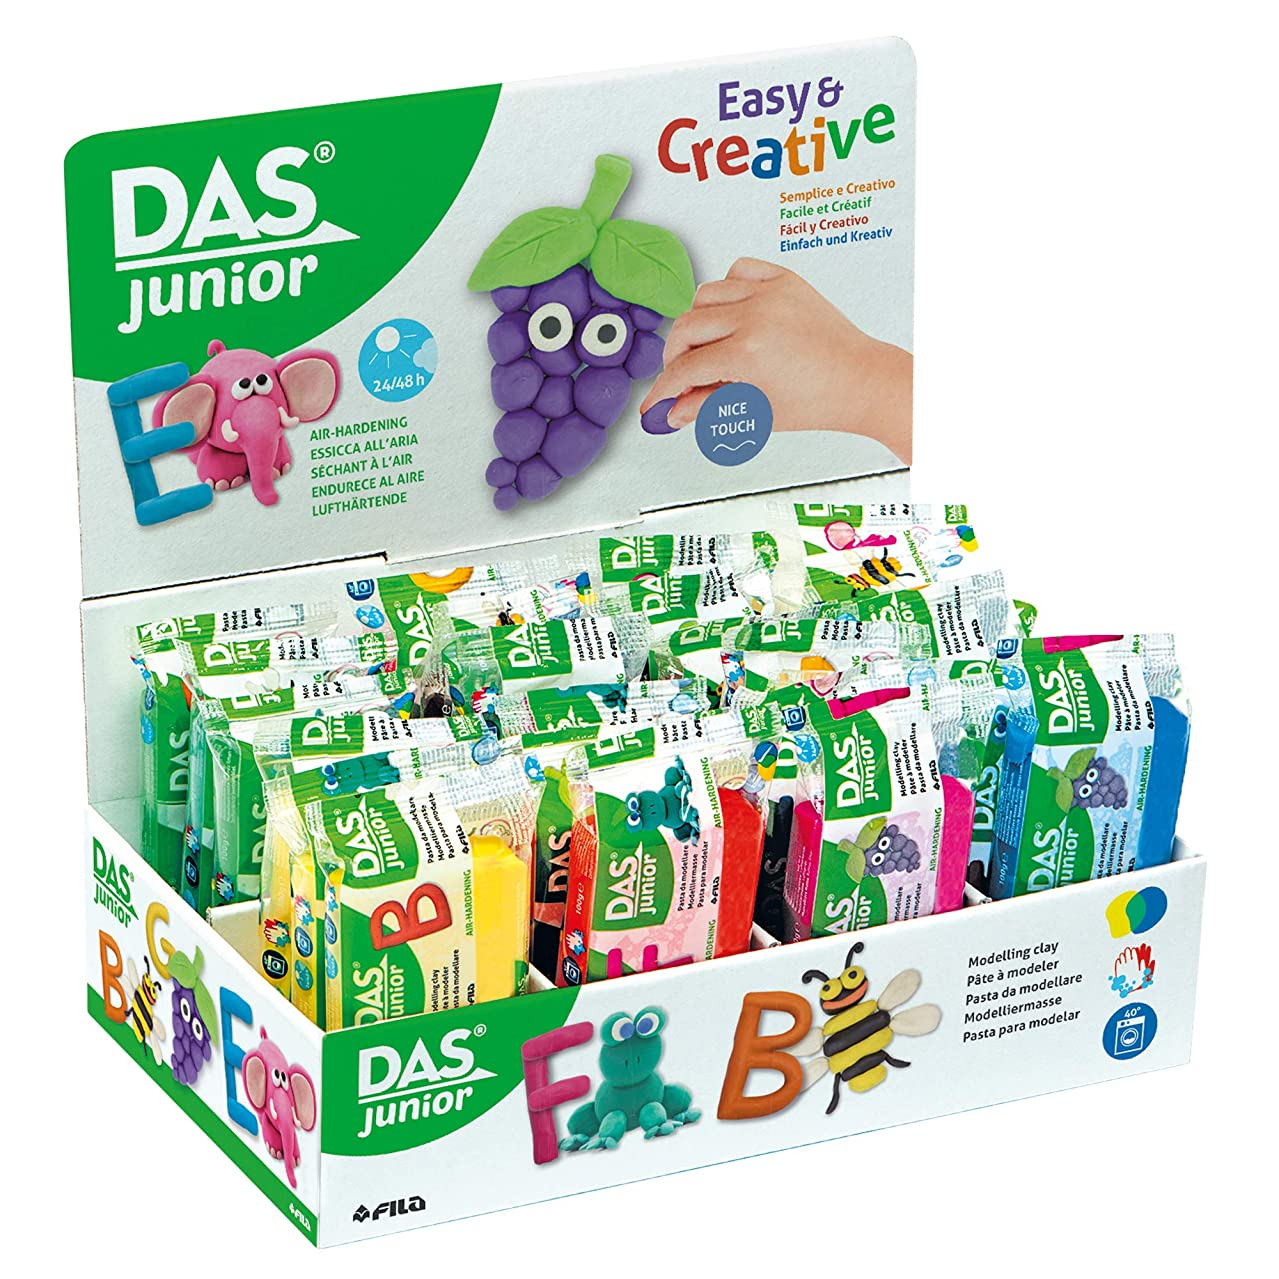 DAS Jr. Air-Hardening Modeling Clay Material, 24-Pack 100 Gram Blocks, Assorted Colors, 24-Blocks (349400)